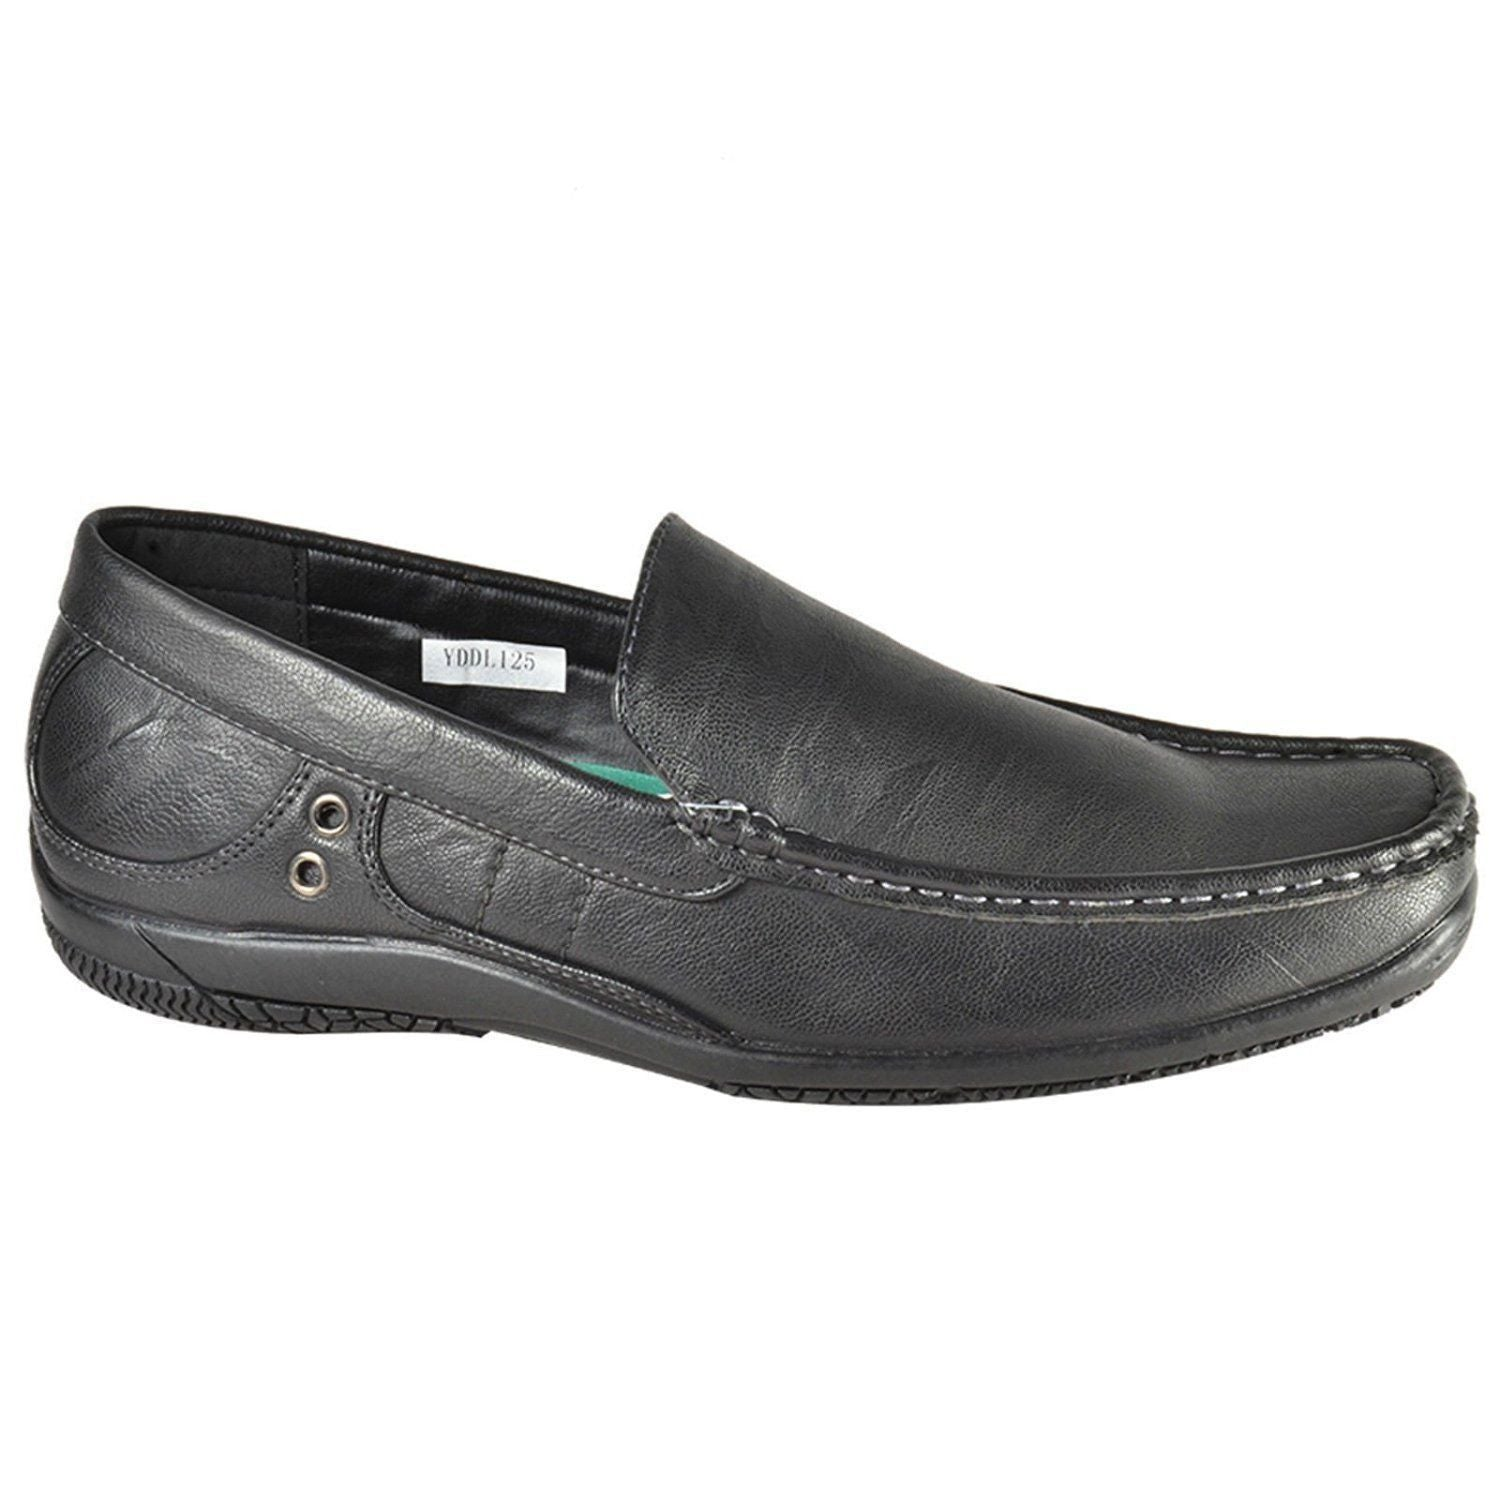 Mens Italian Casual Leather Moccasins